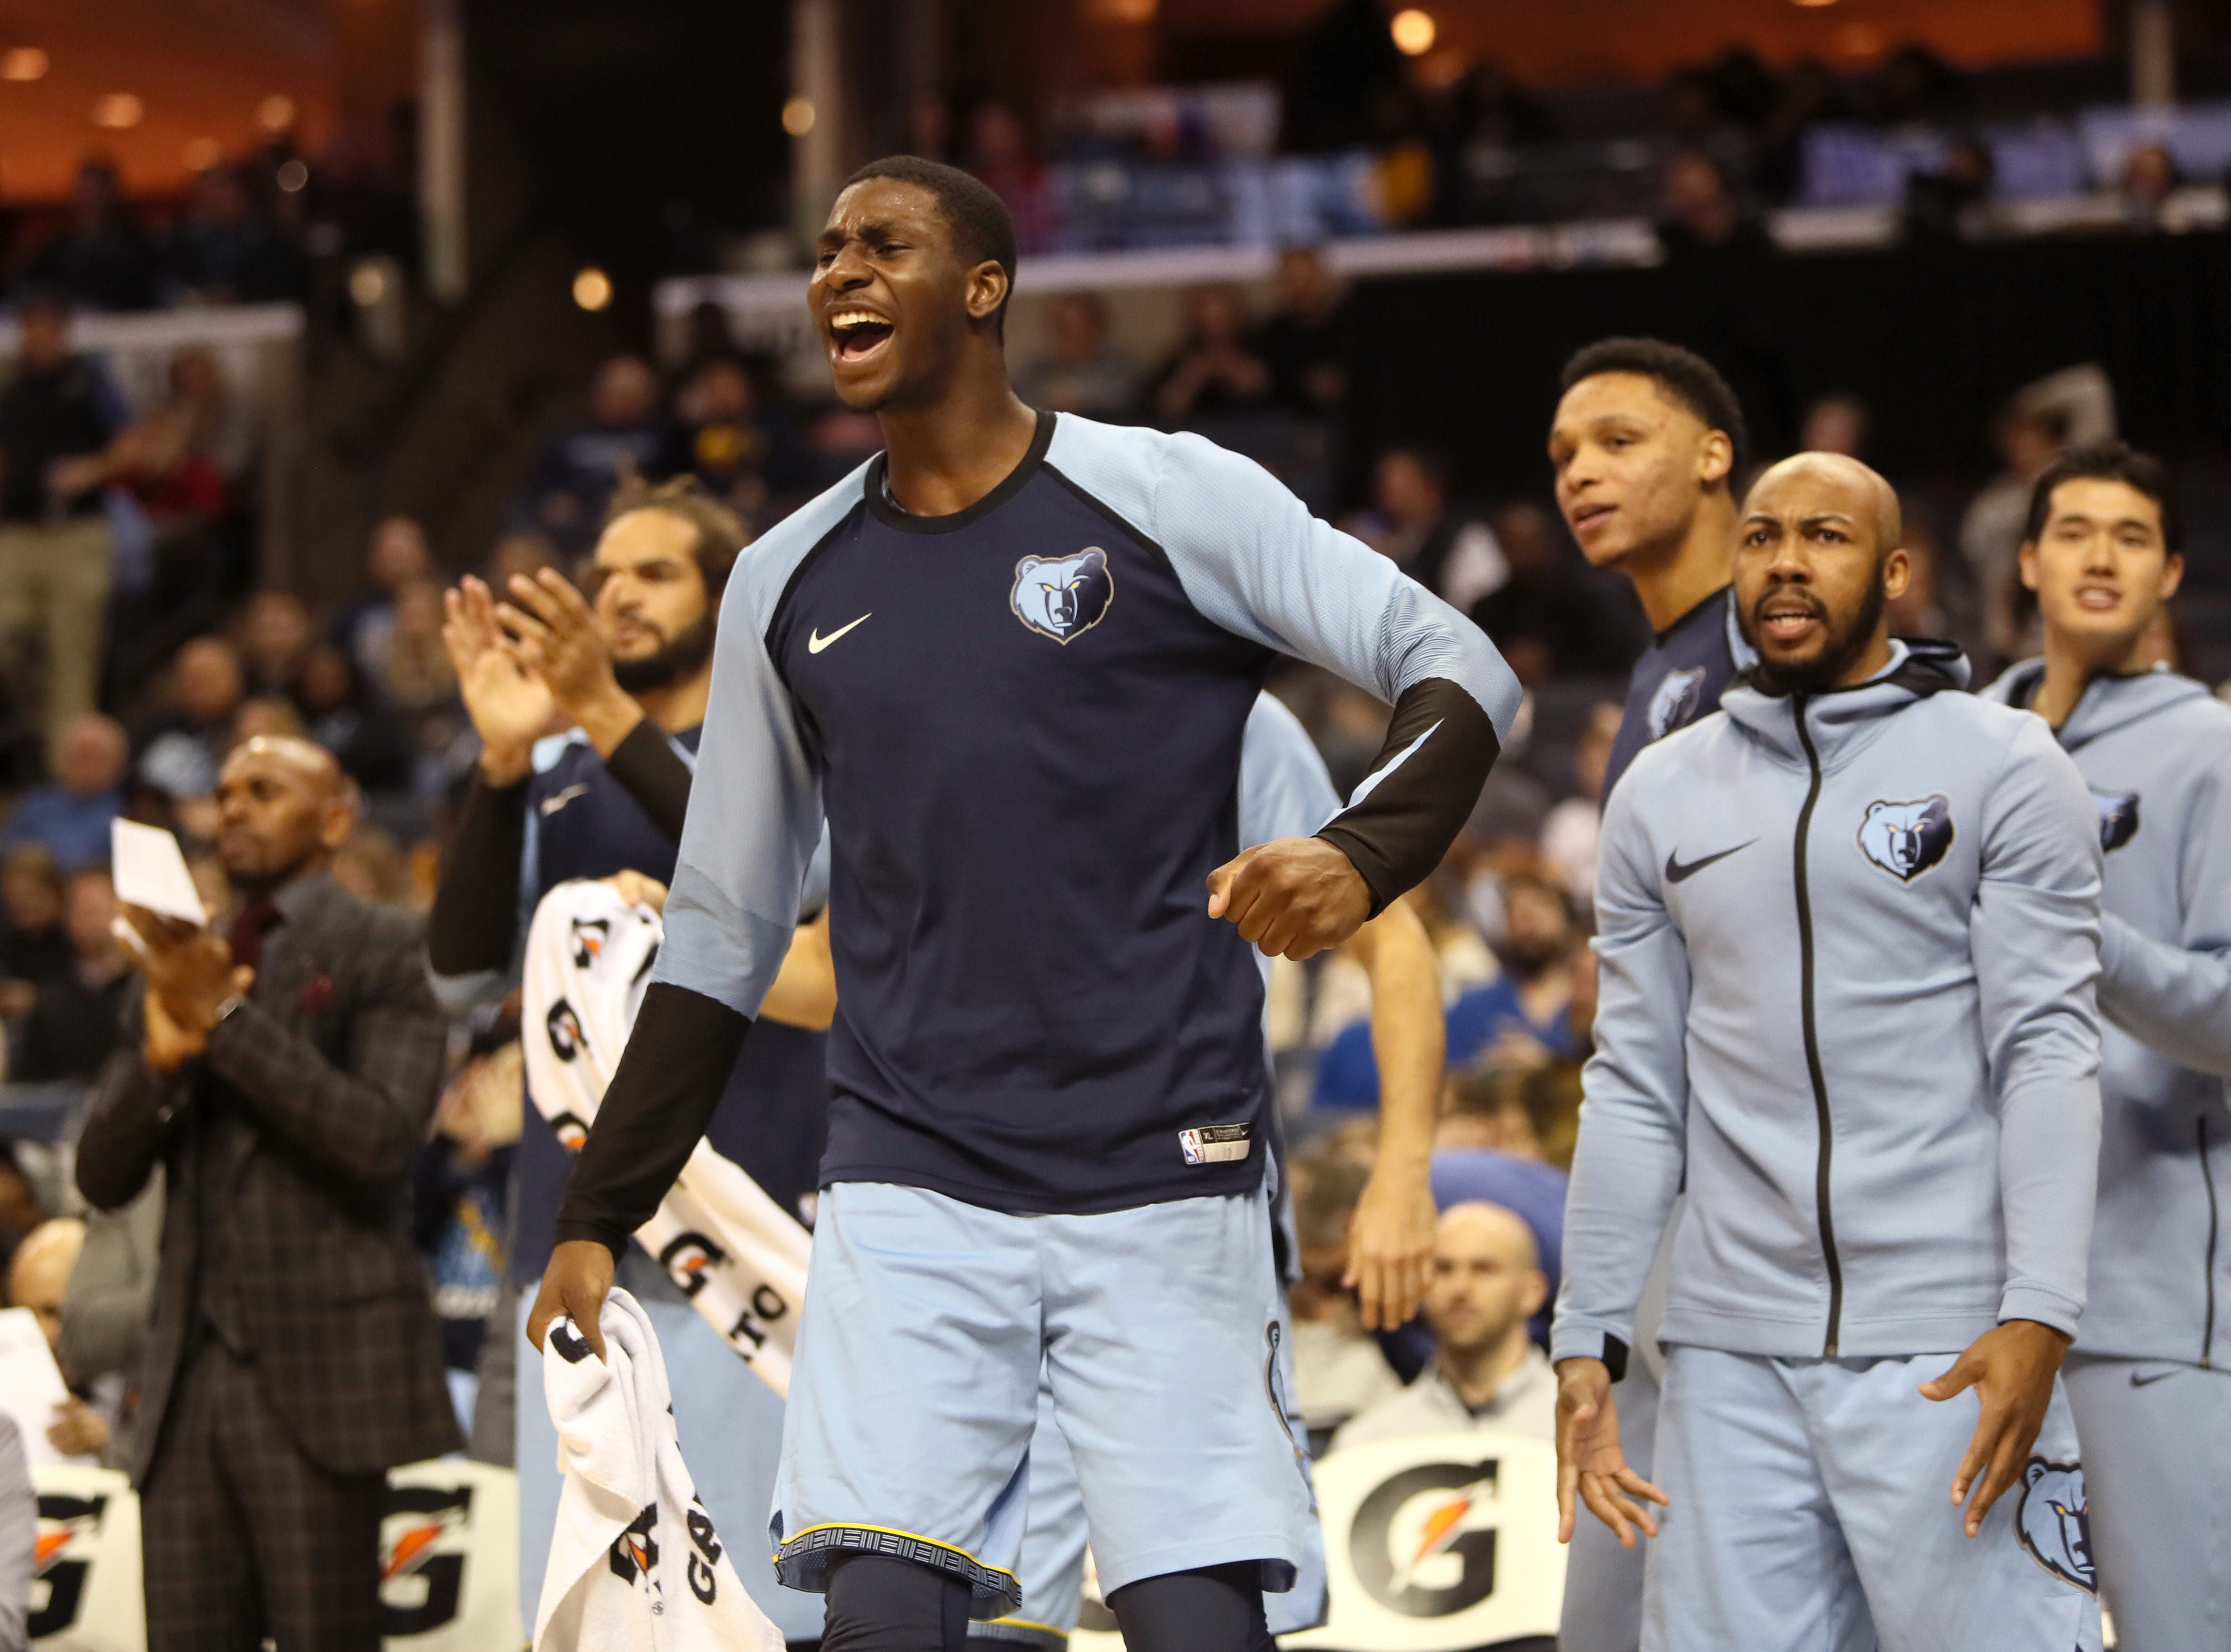 Memphis Grizzliesforward Jaren Jackson Jr. celebrates from the bench as they defeat the San Antonio Spurs 96-86 at the FedExForum on Wednesday, Jan. 9, 2019.